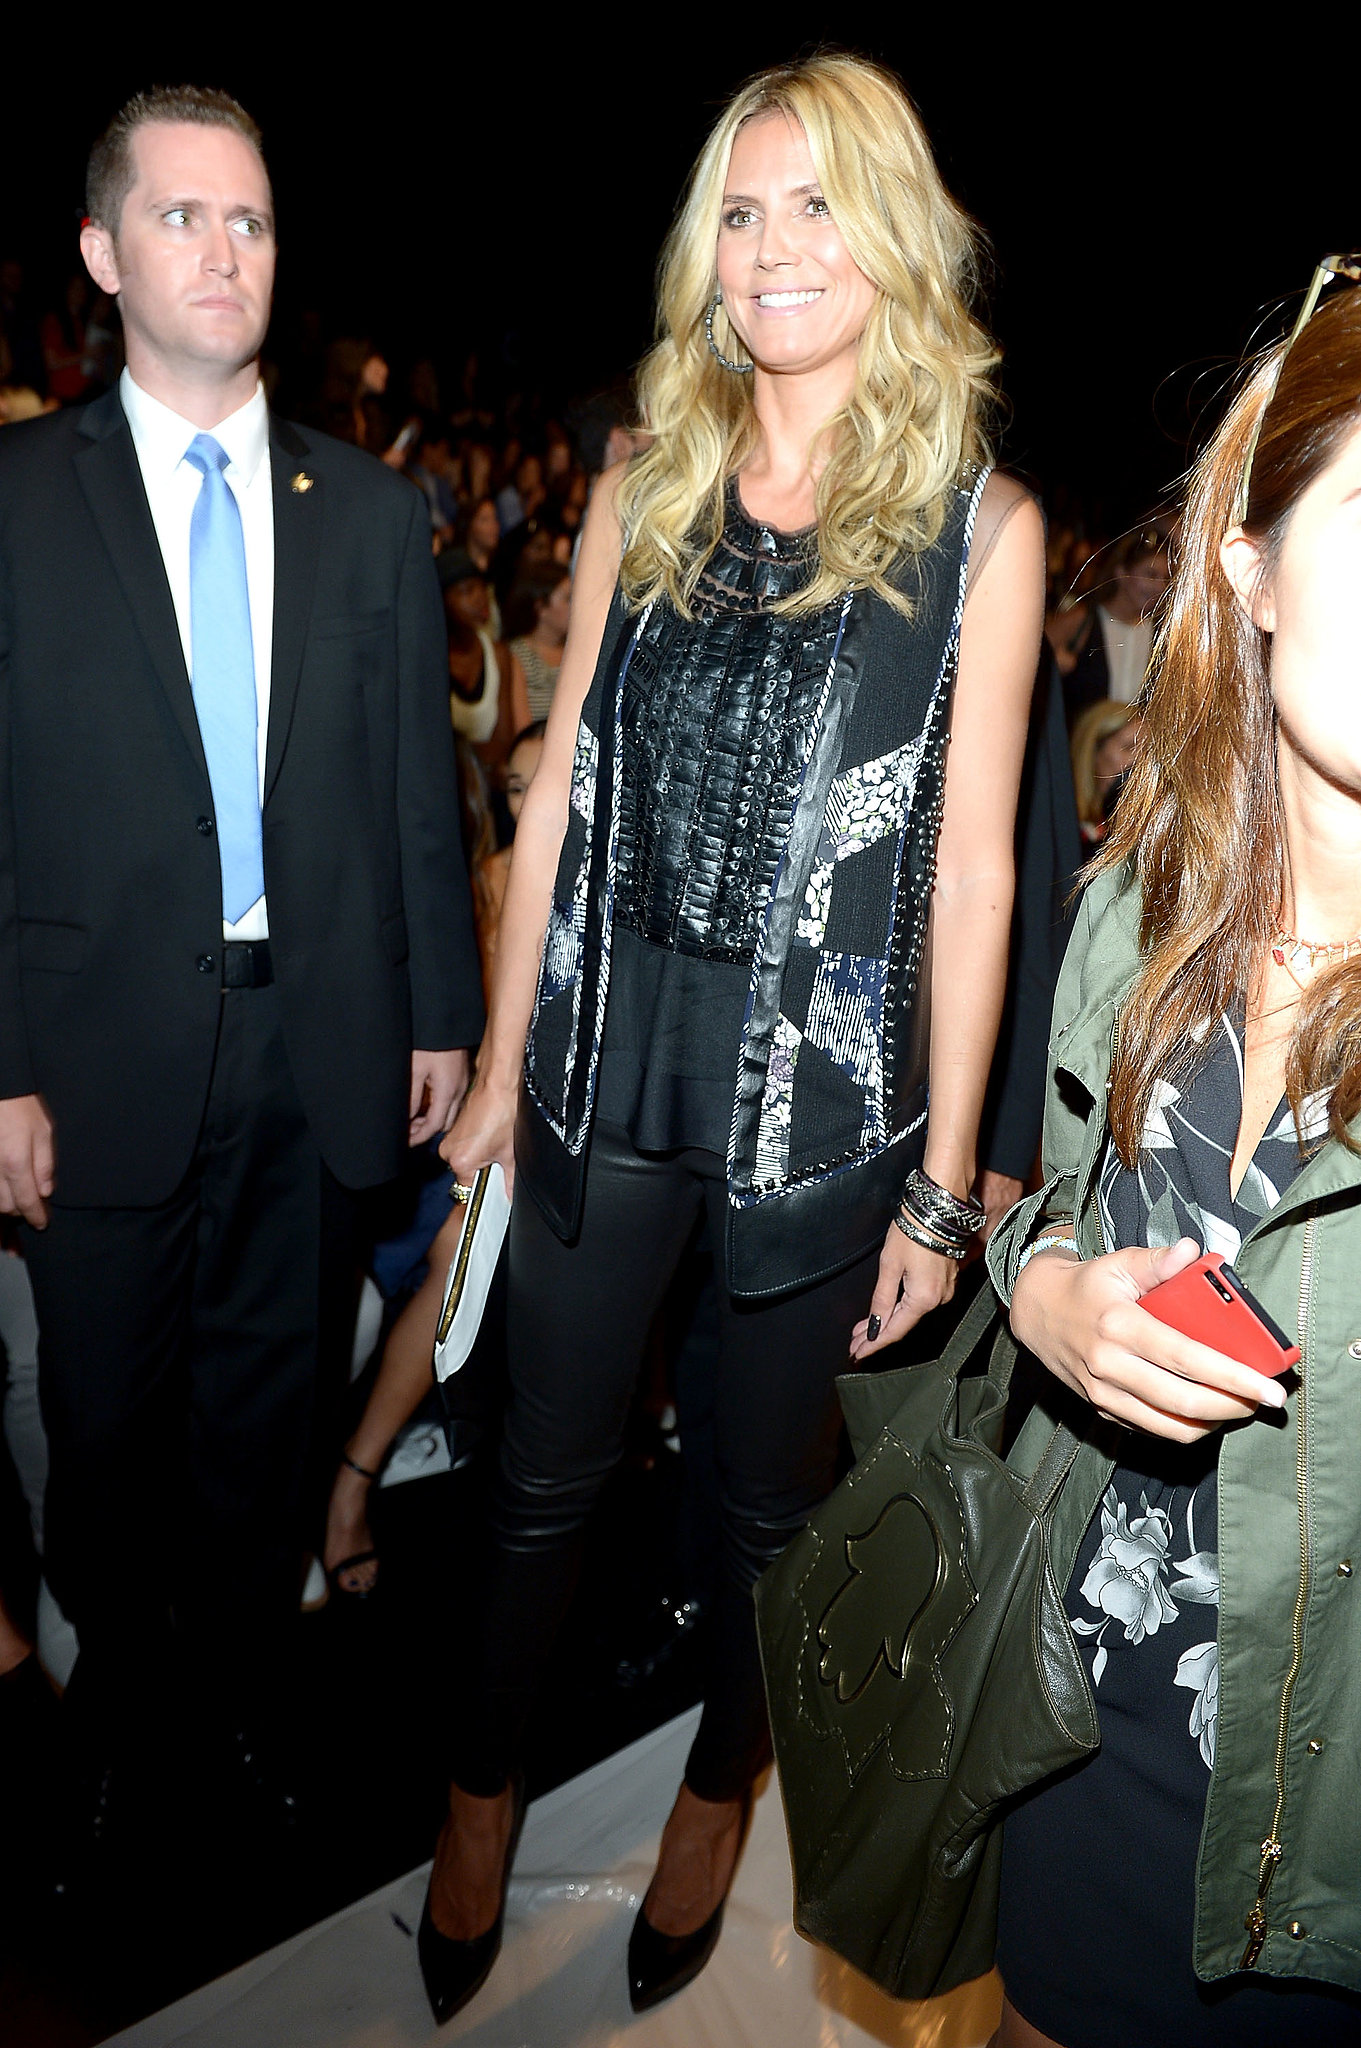 Heidi Klum worked a dark look in an embellished BCBG Max Azria vest with black leather skinny pants at BCBG.